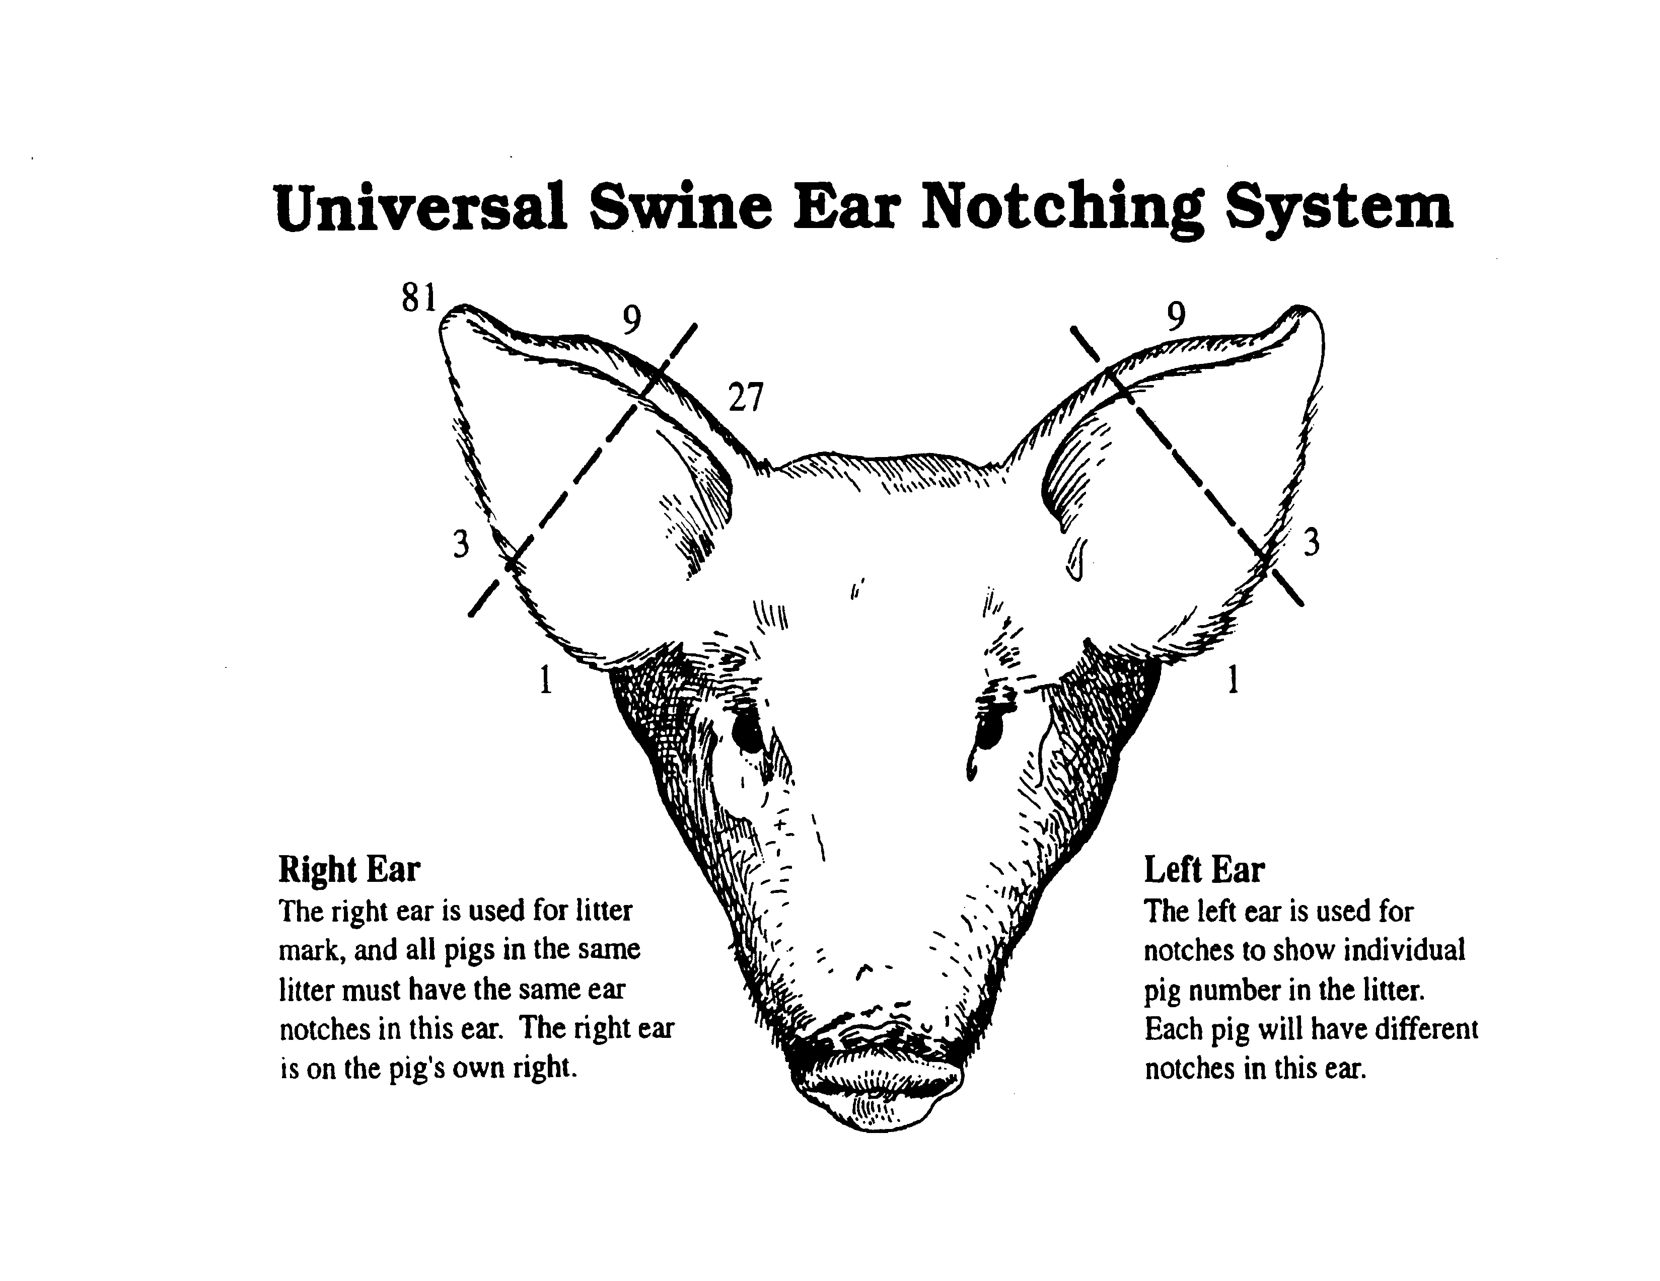 hight resolution of pig ear notches universal swine ear notching system stock show pig skeleton diagram pig ear diagram